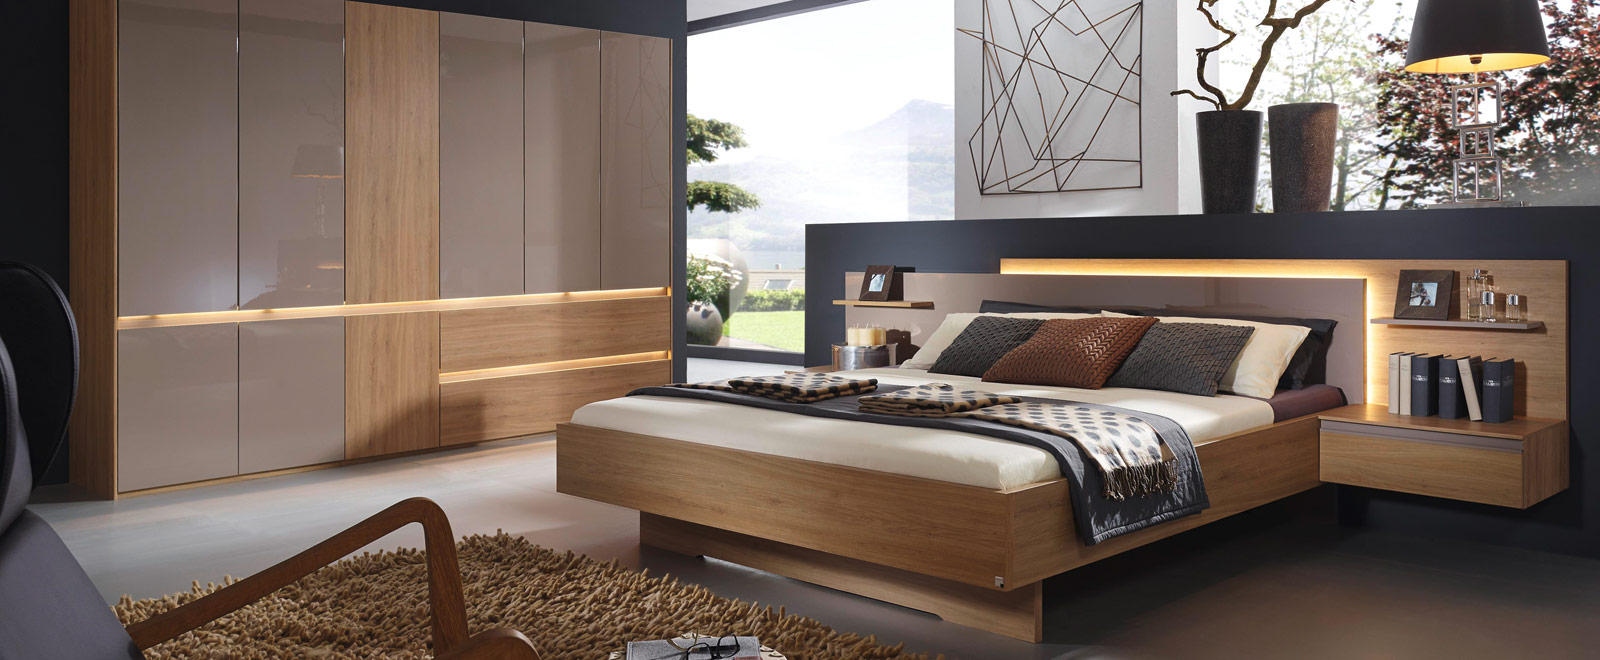 The company with great tradition and a history of more than 115 years has  specialized in producing furniture for master bedrooms  wardrobe systems  and. Home